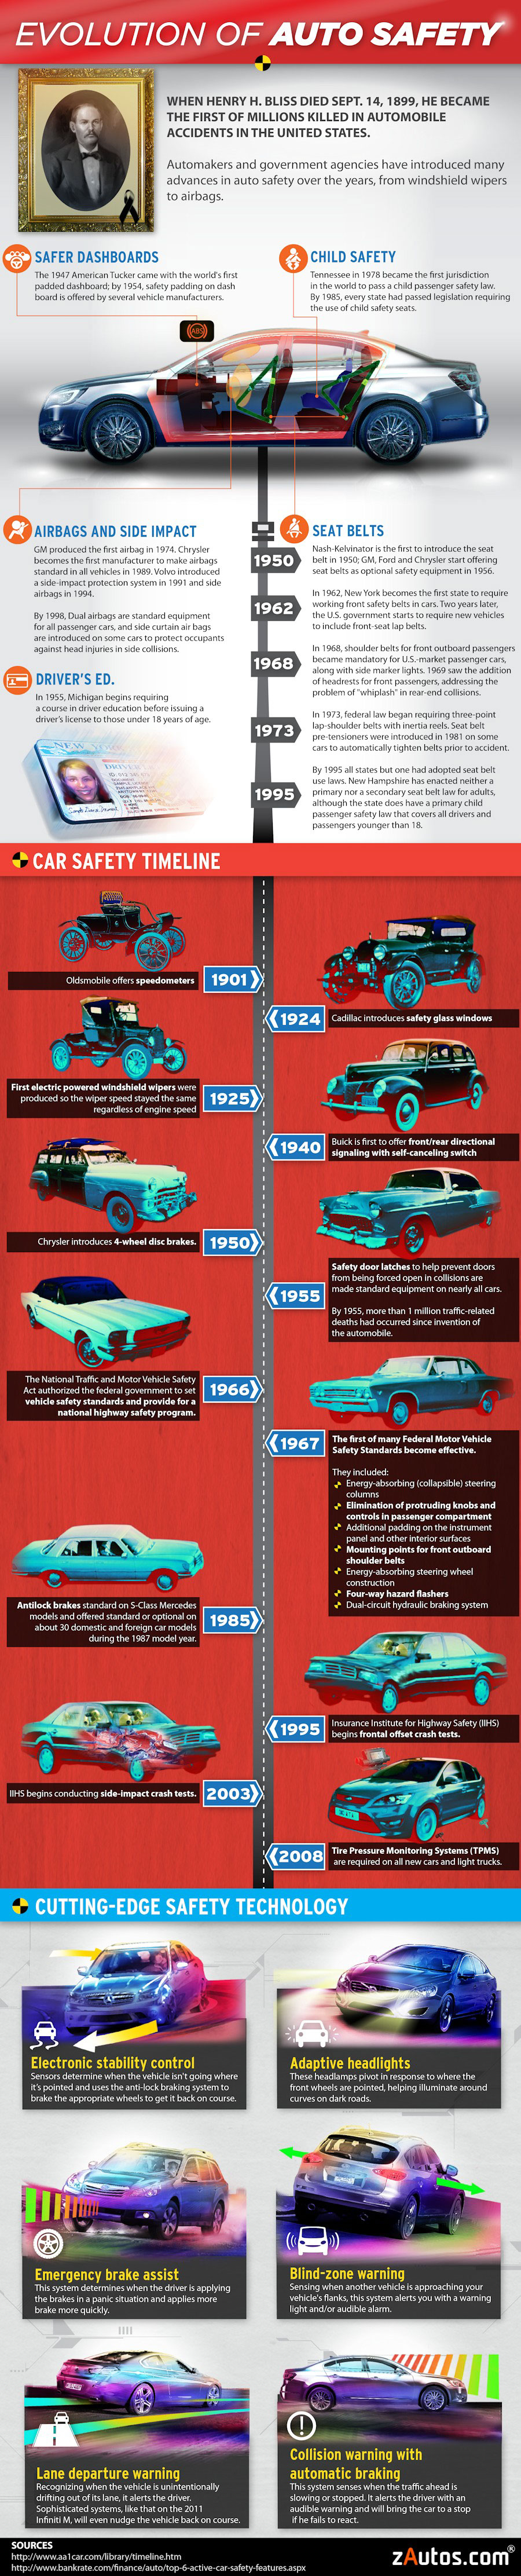 Evolution-Of-Auto-Safety-infographic